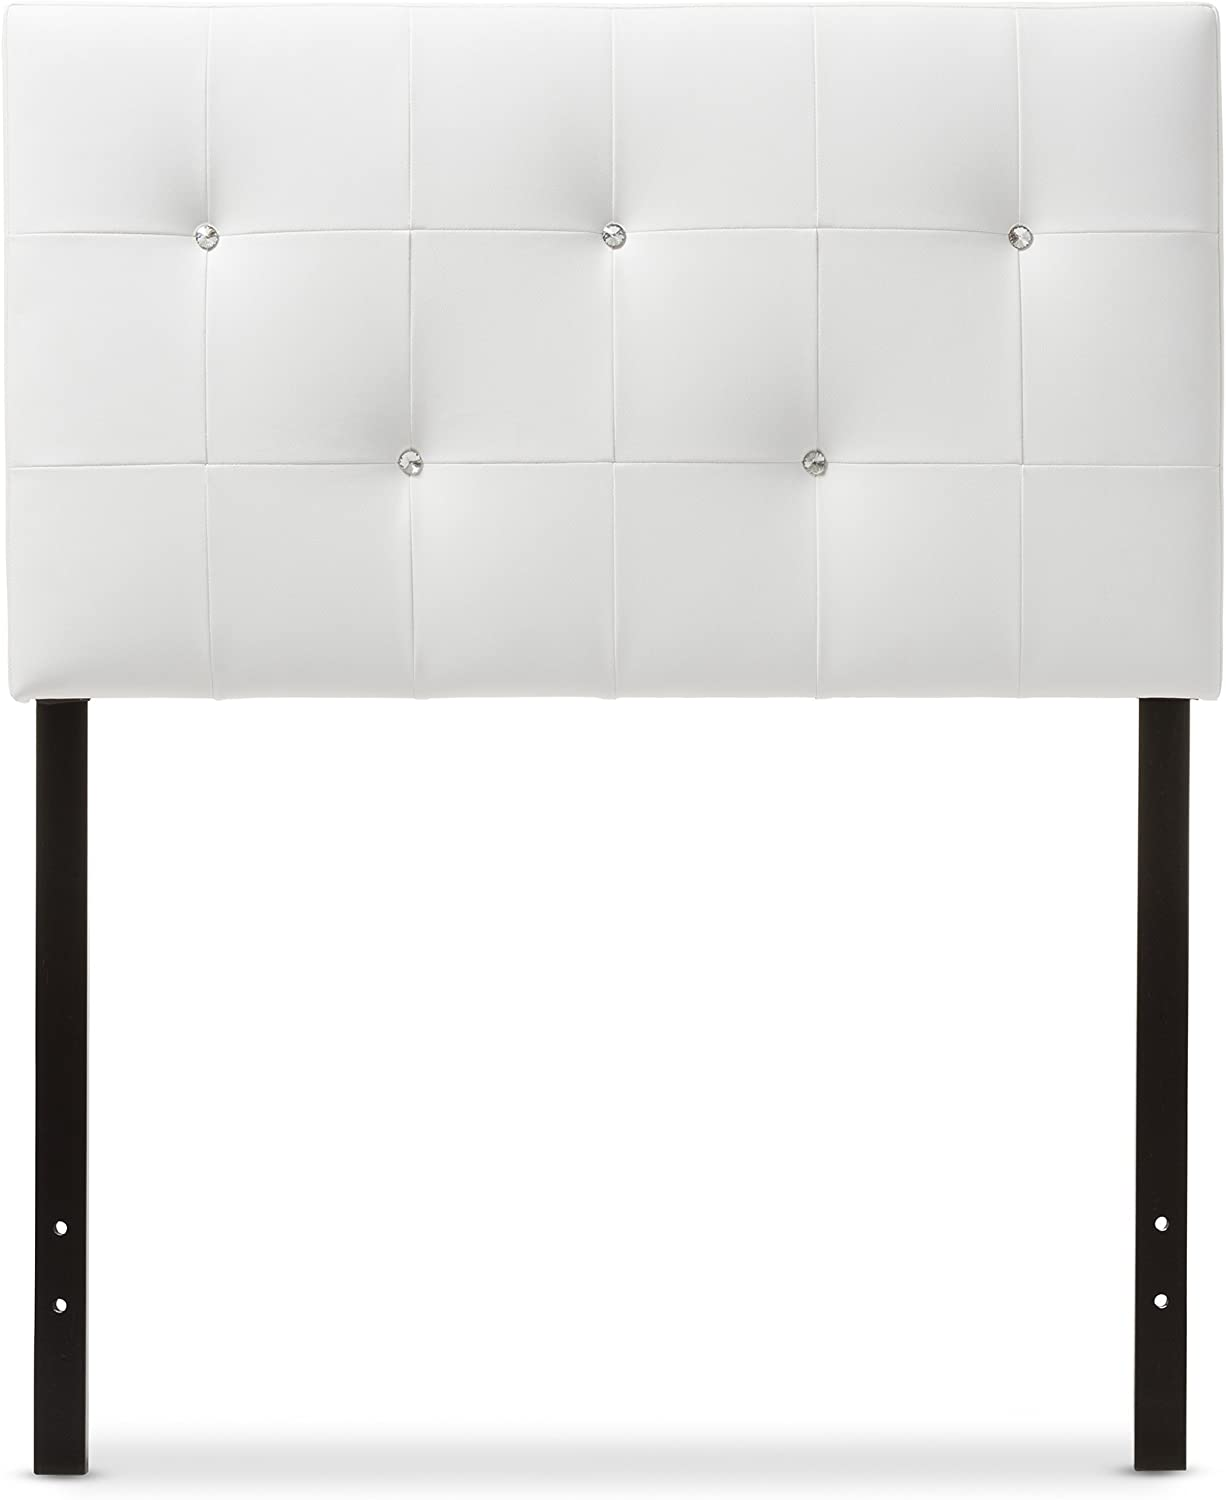 Baxton Studio Josette Modern & Contemporary White Faux Leather Upholstered Headboard, Twin